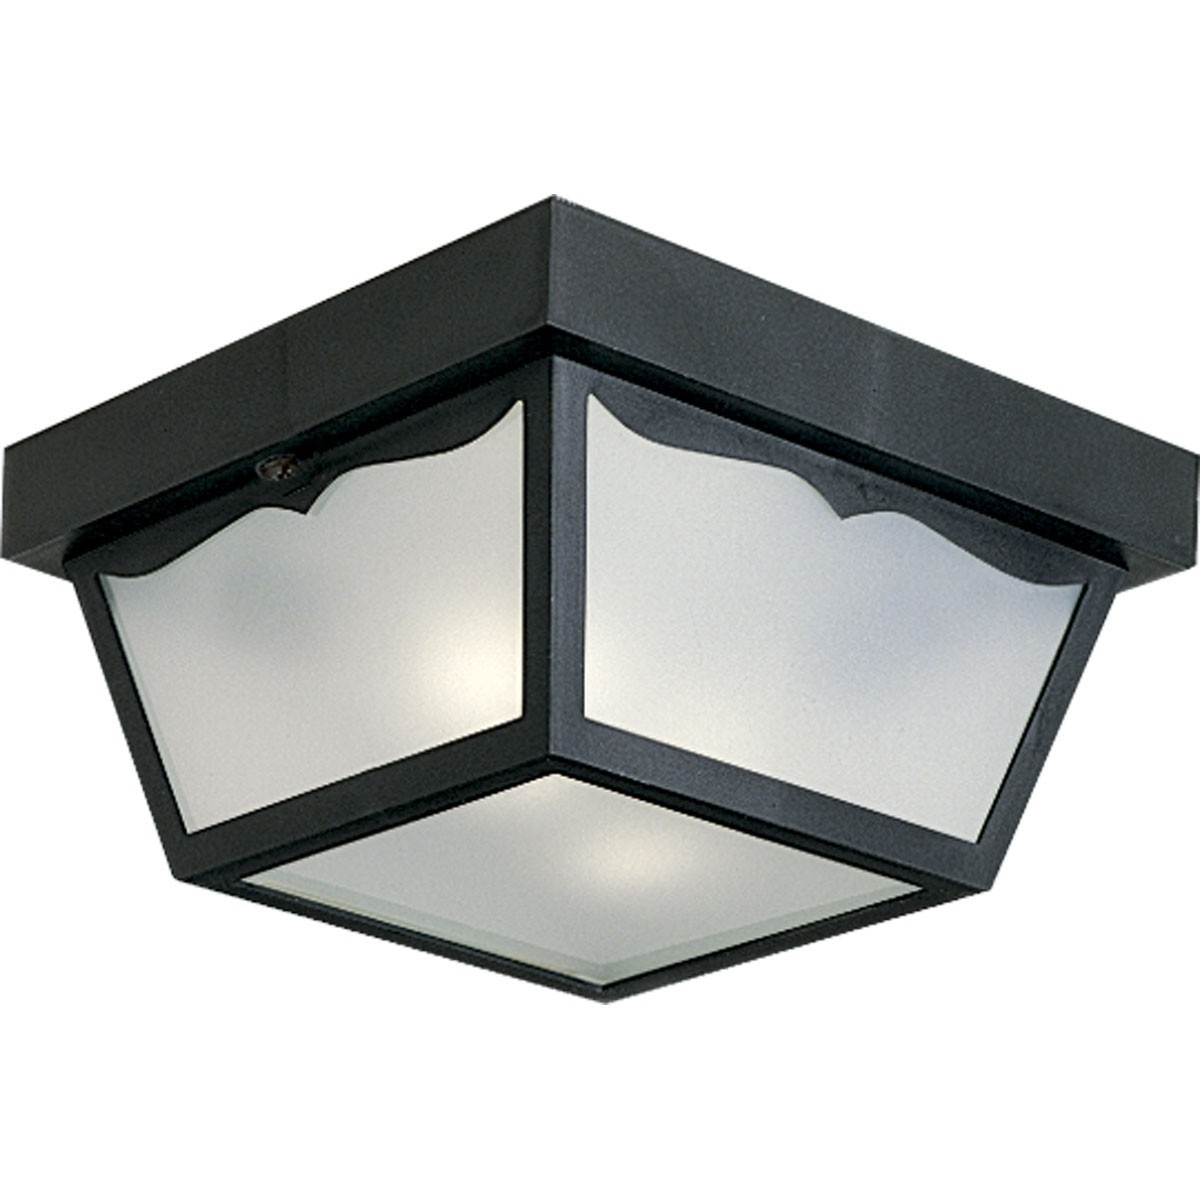 Most Recently Released Outdoor Ceiling Can Lights Inside 60W Outdoor Flush Mount Non Metallic Ceiling Light – Progress (View 10 of 20)